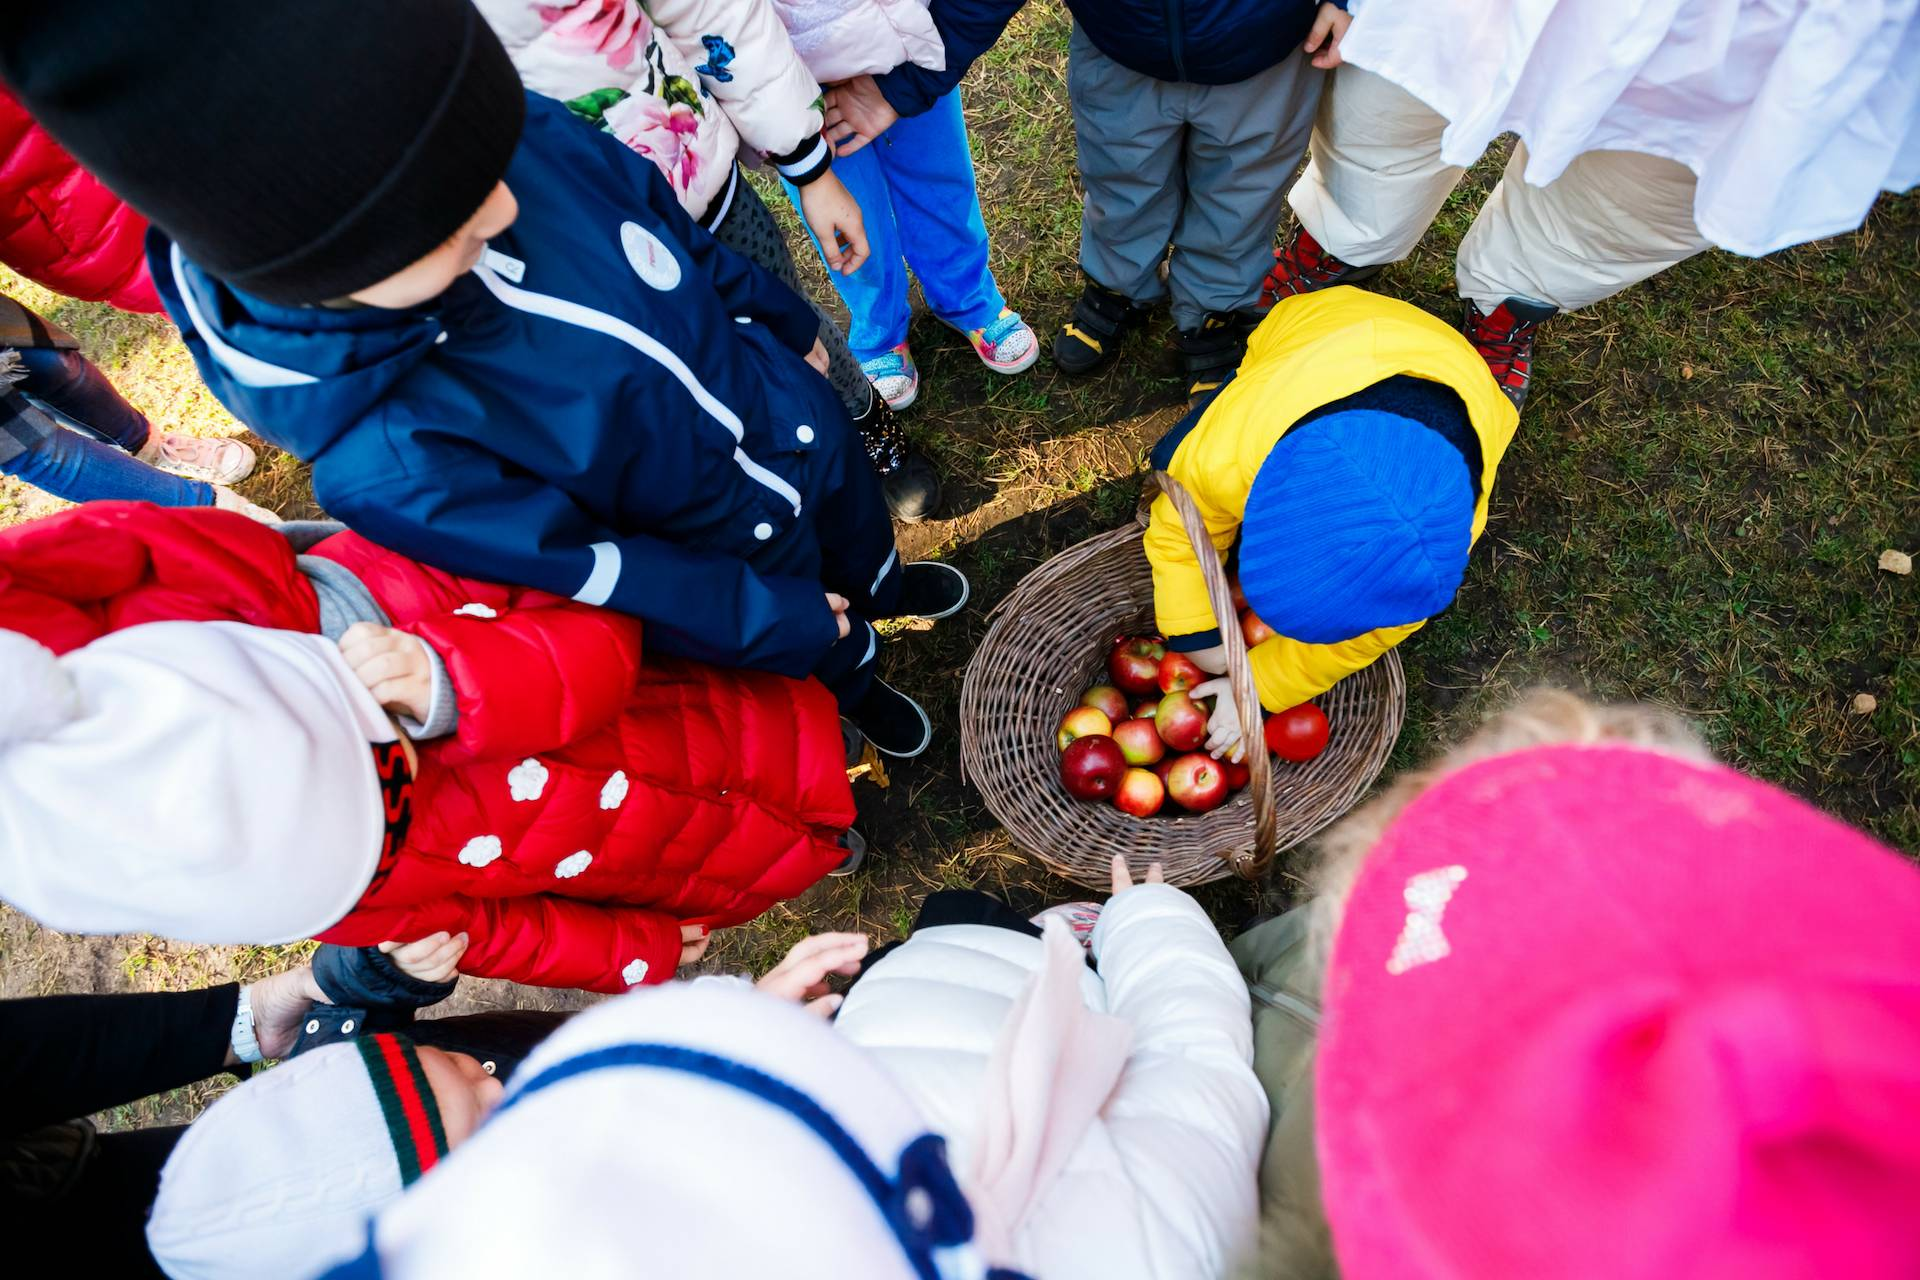 APPLE DAY AT RIS NURSERY ZHUKOVKA